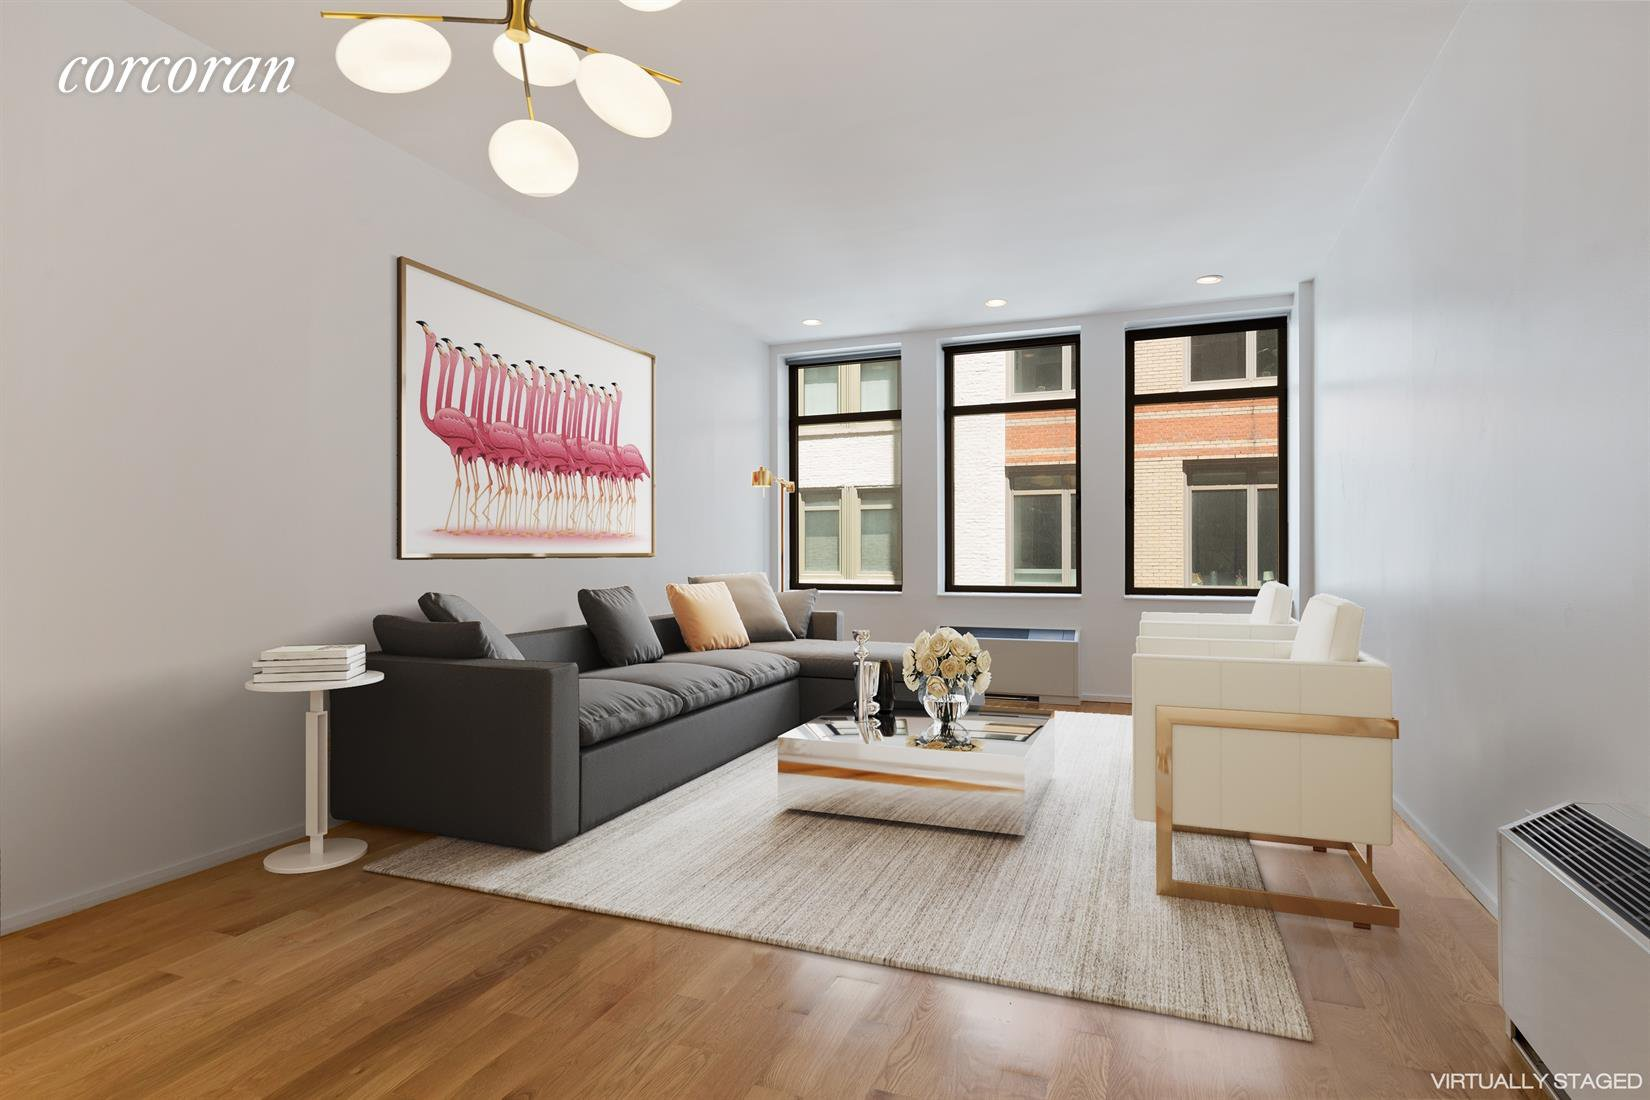 The Chelsea Mercantile, 252 7TH AVE | Apartments for Sale ...